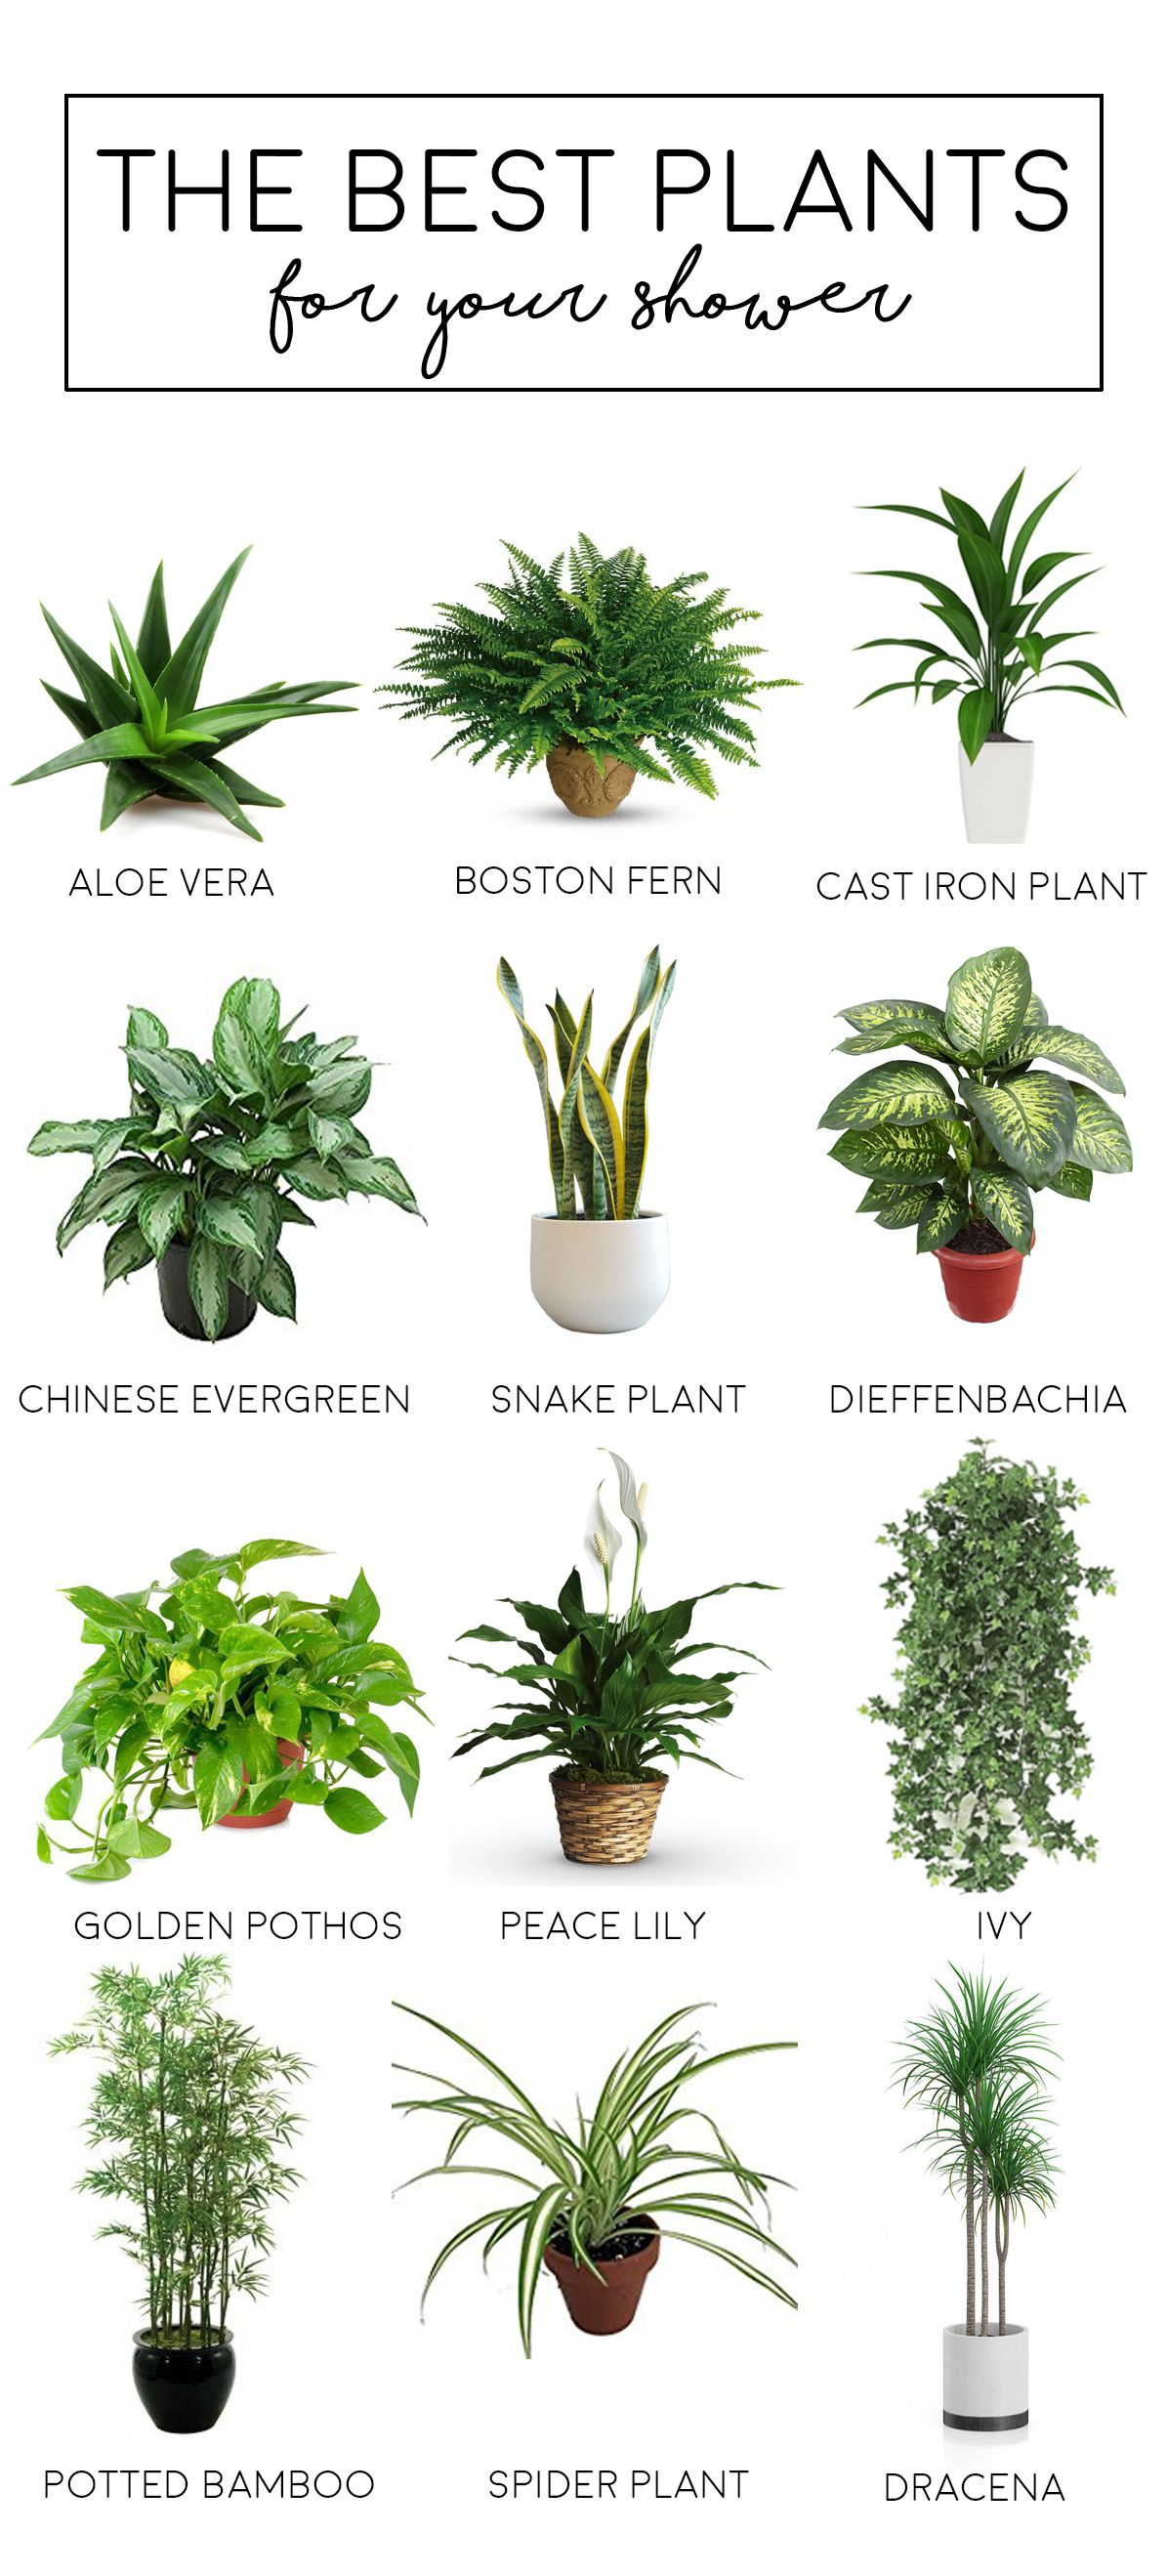 Marvelous Bathroom Plants Part - 5: Best Plants To Have Bathroom Or Shower